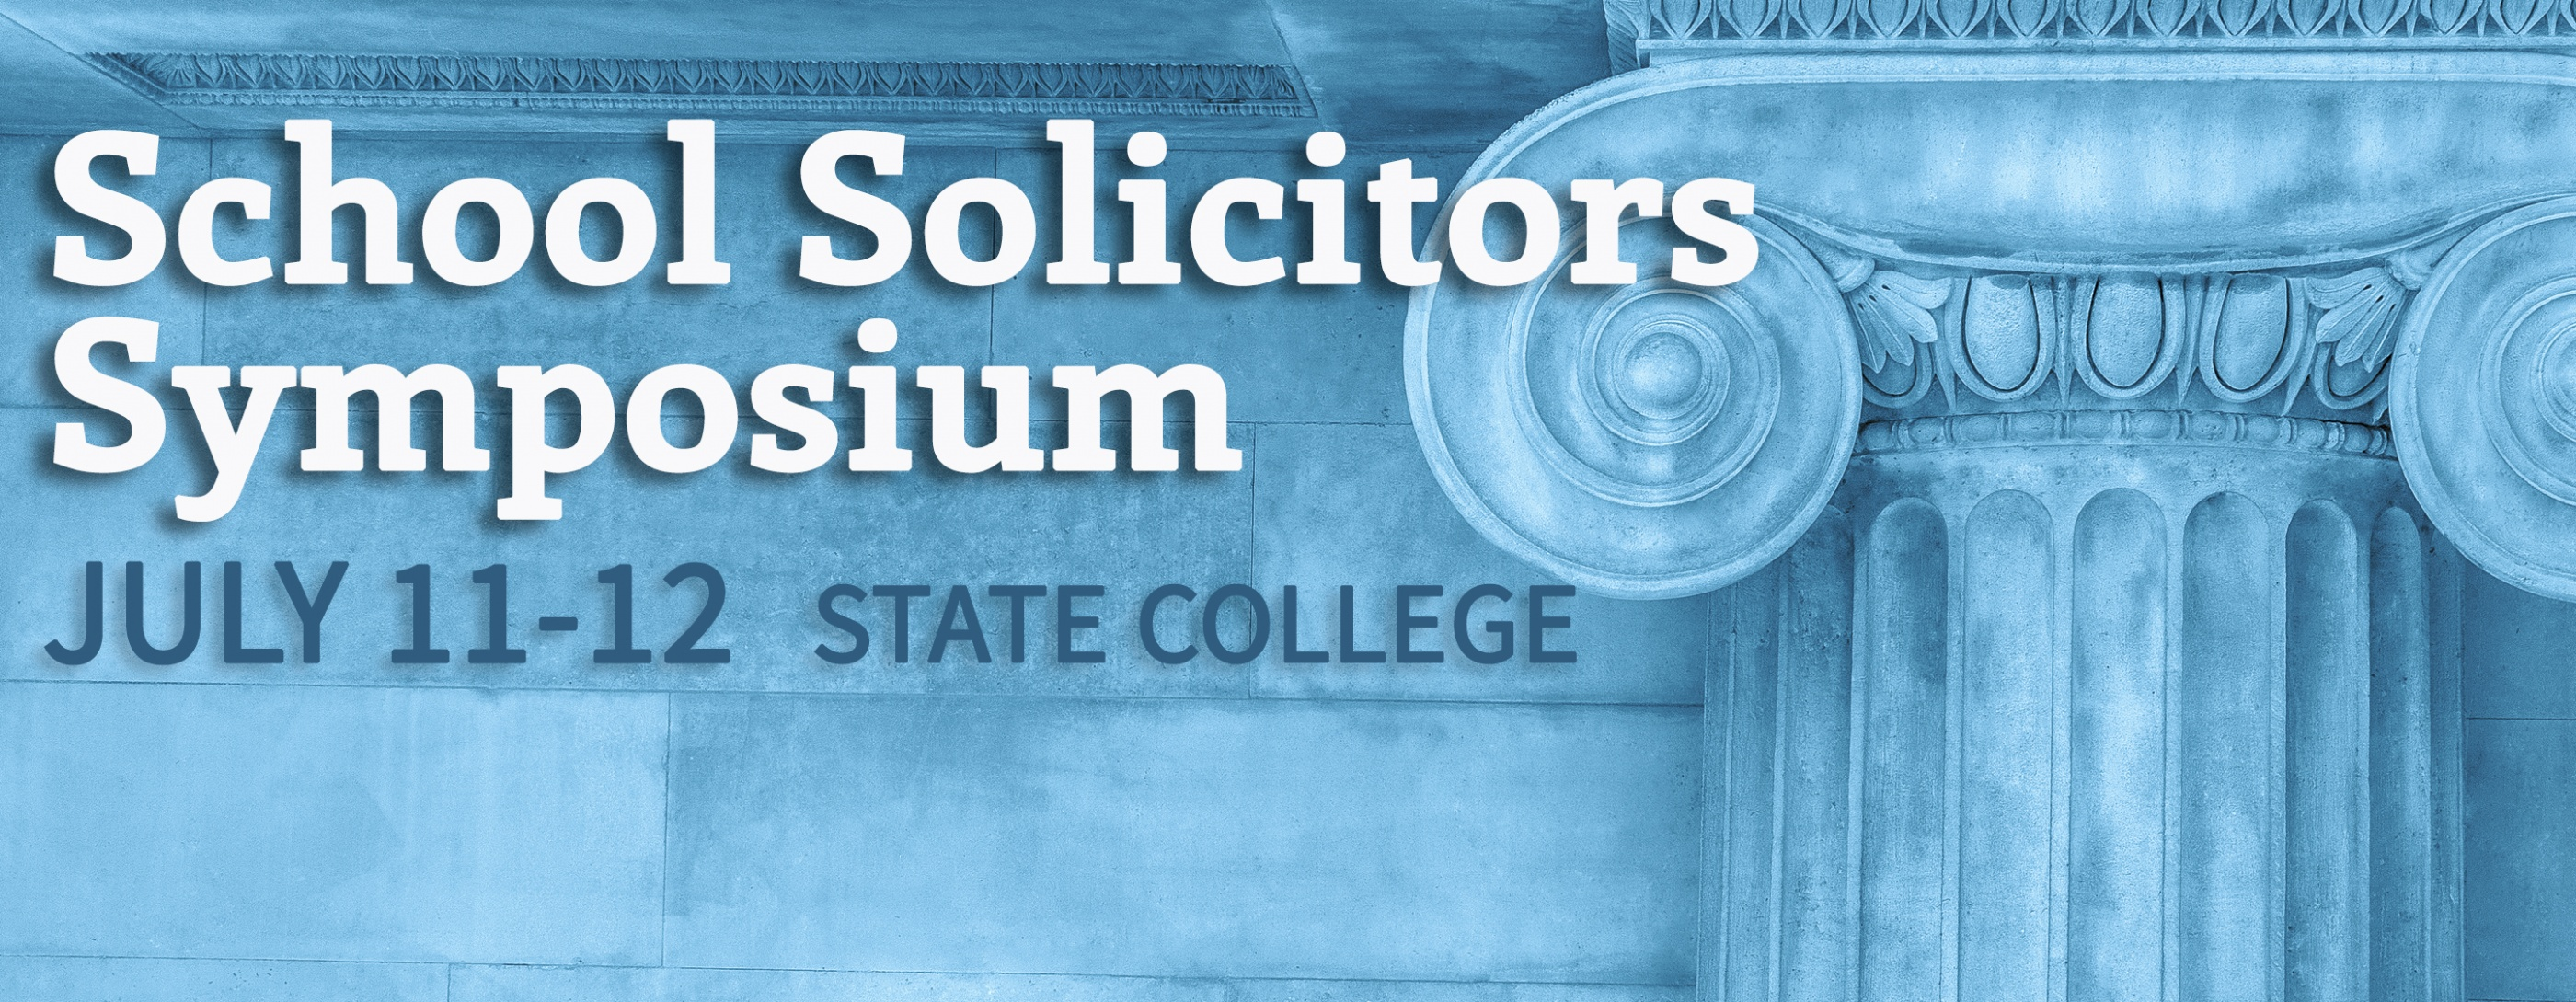 School Solicitors Symposium